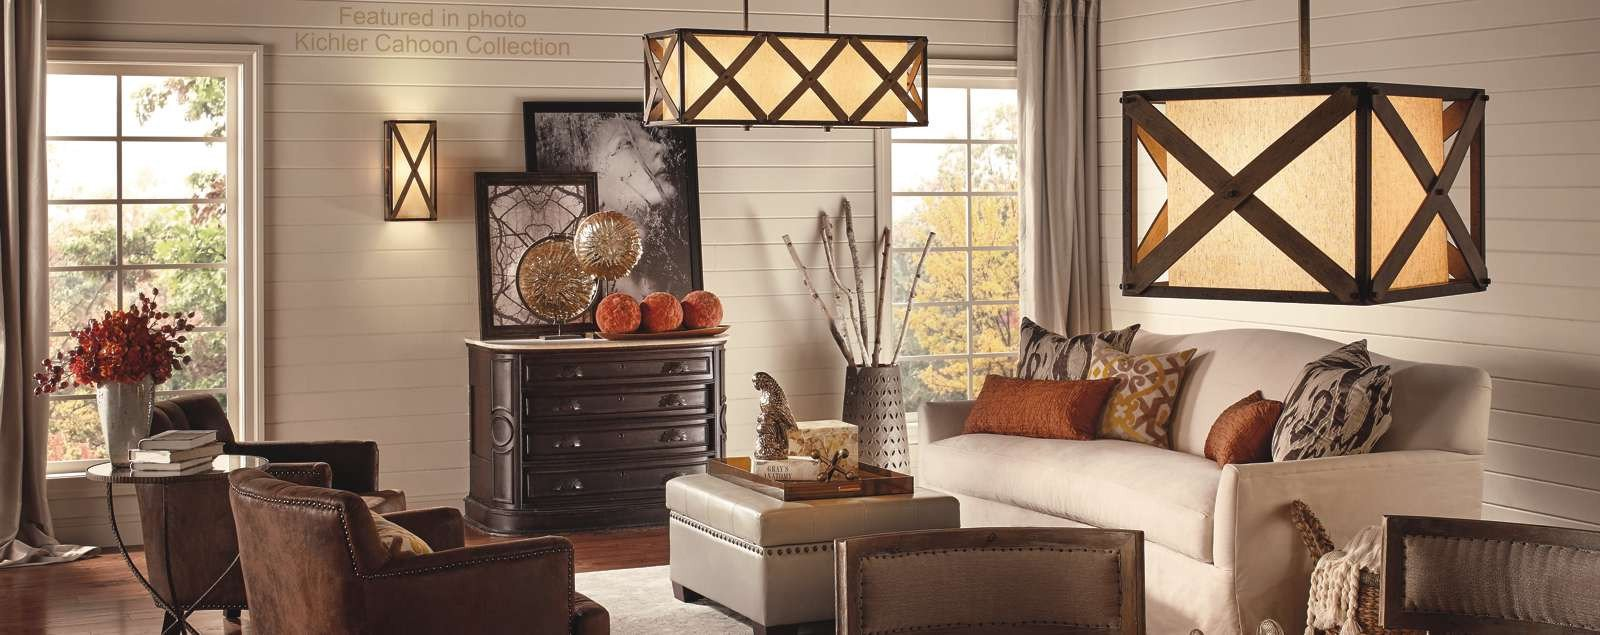 Plug In Wall Lamps for Bedroom Awesome Home Lighting Light Fixtures From Hansen wholesale